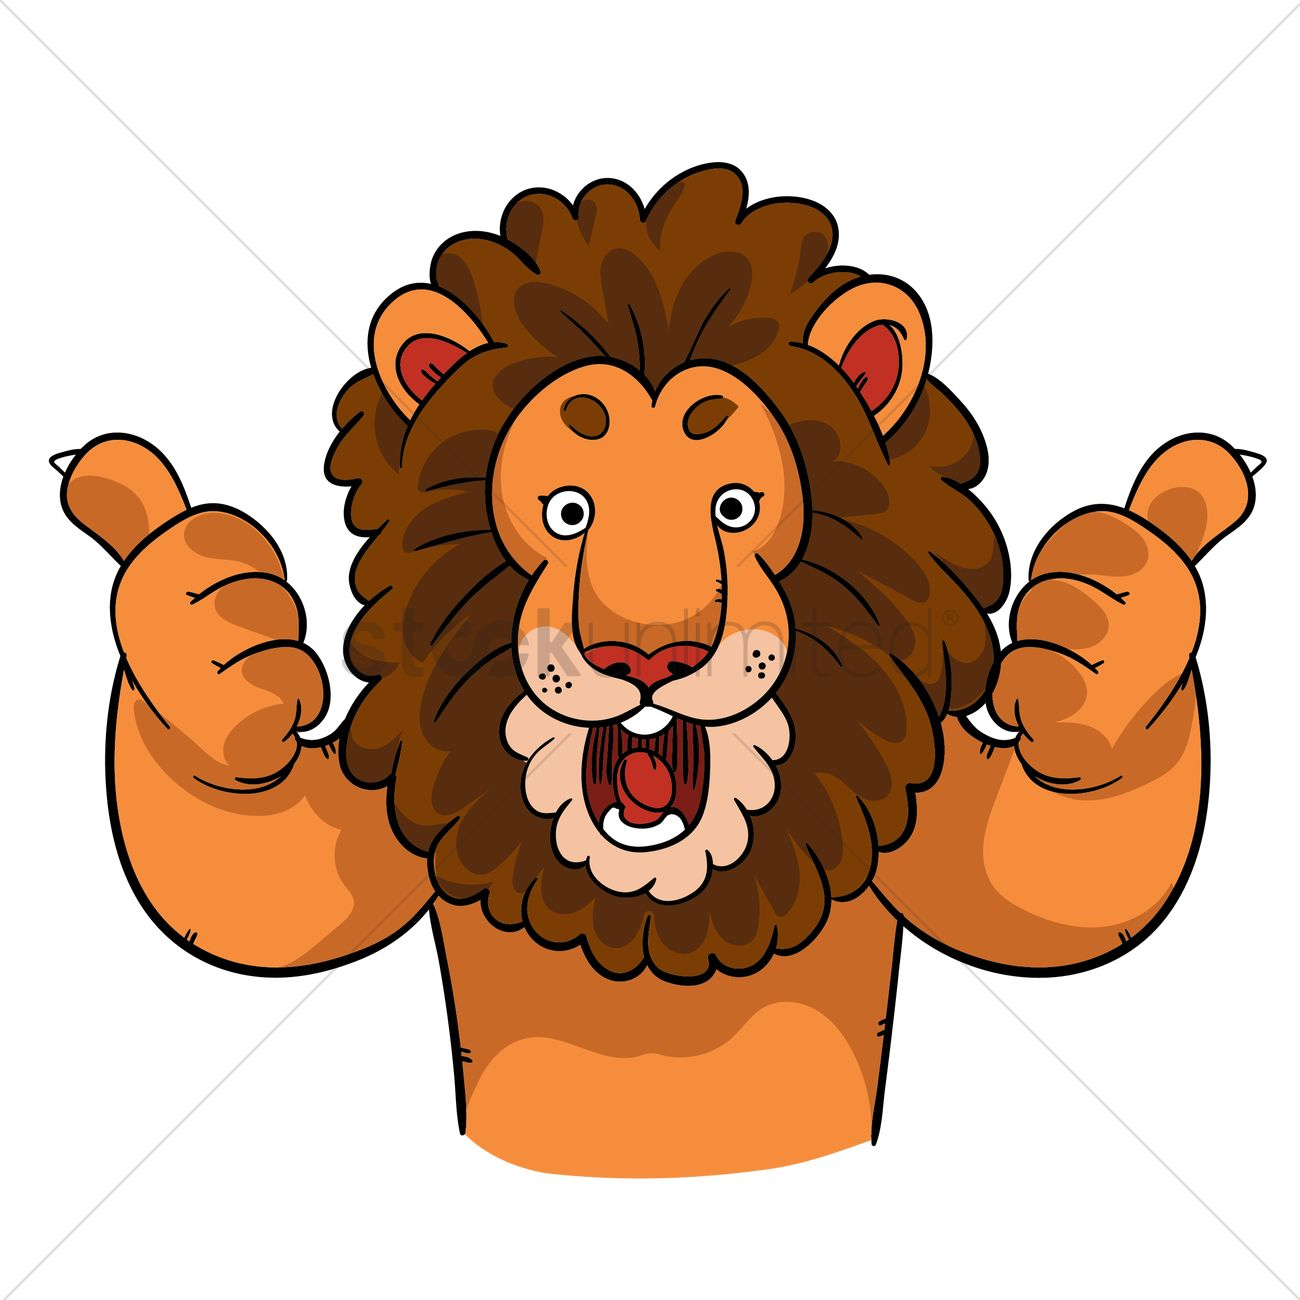 Cartoon Lion Giving Two Thumbs Up Vector Image 1957578